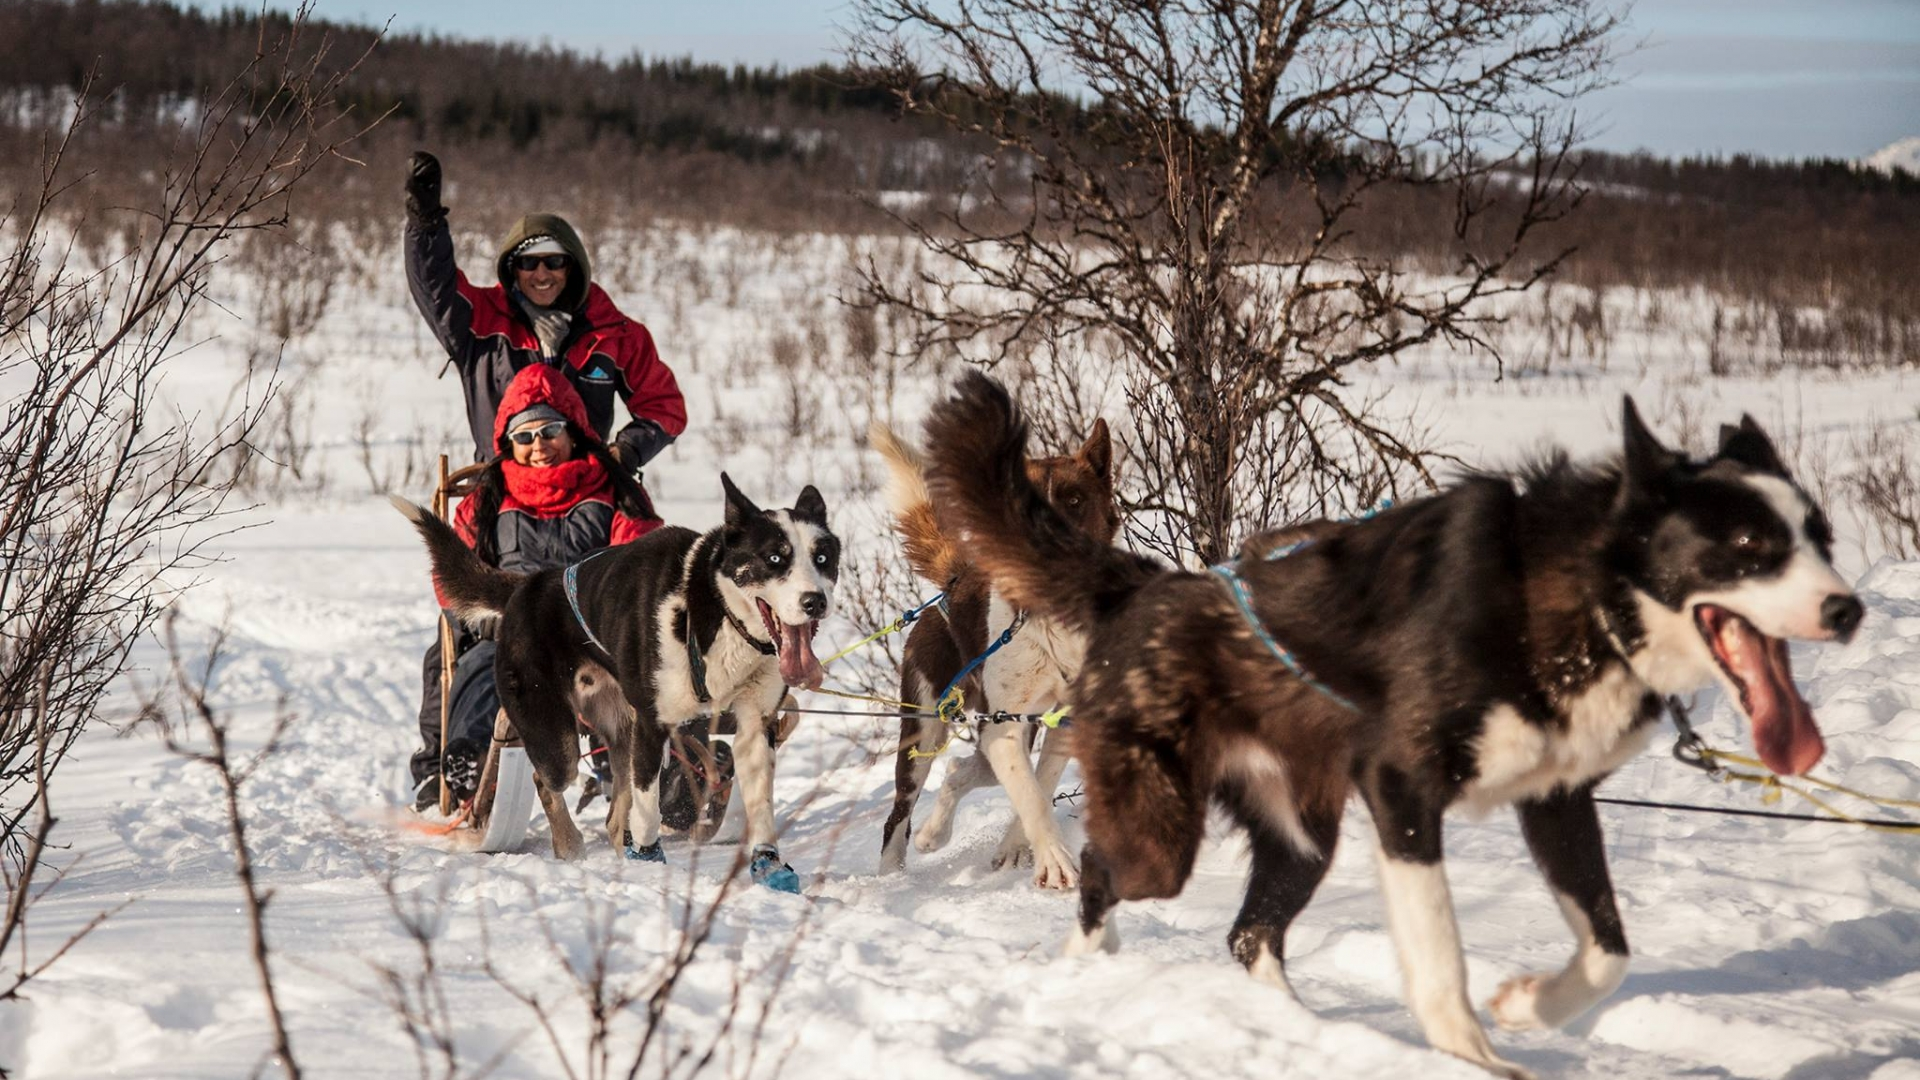 two people dogsledding